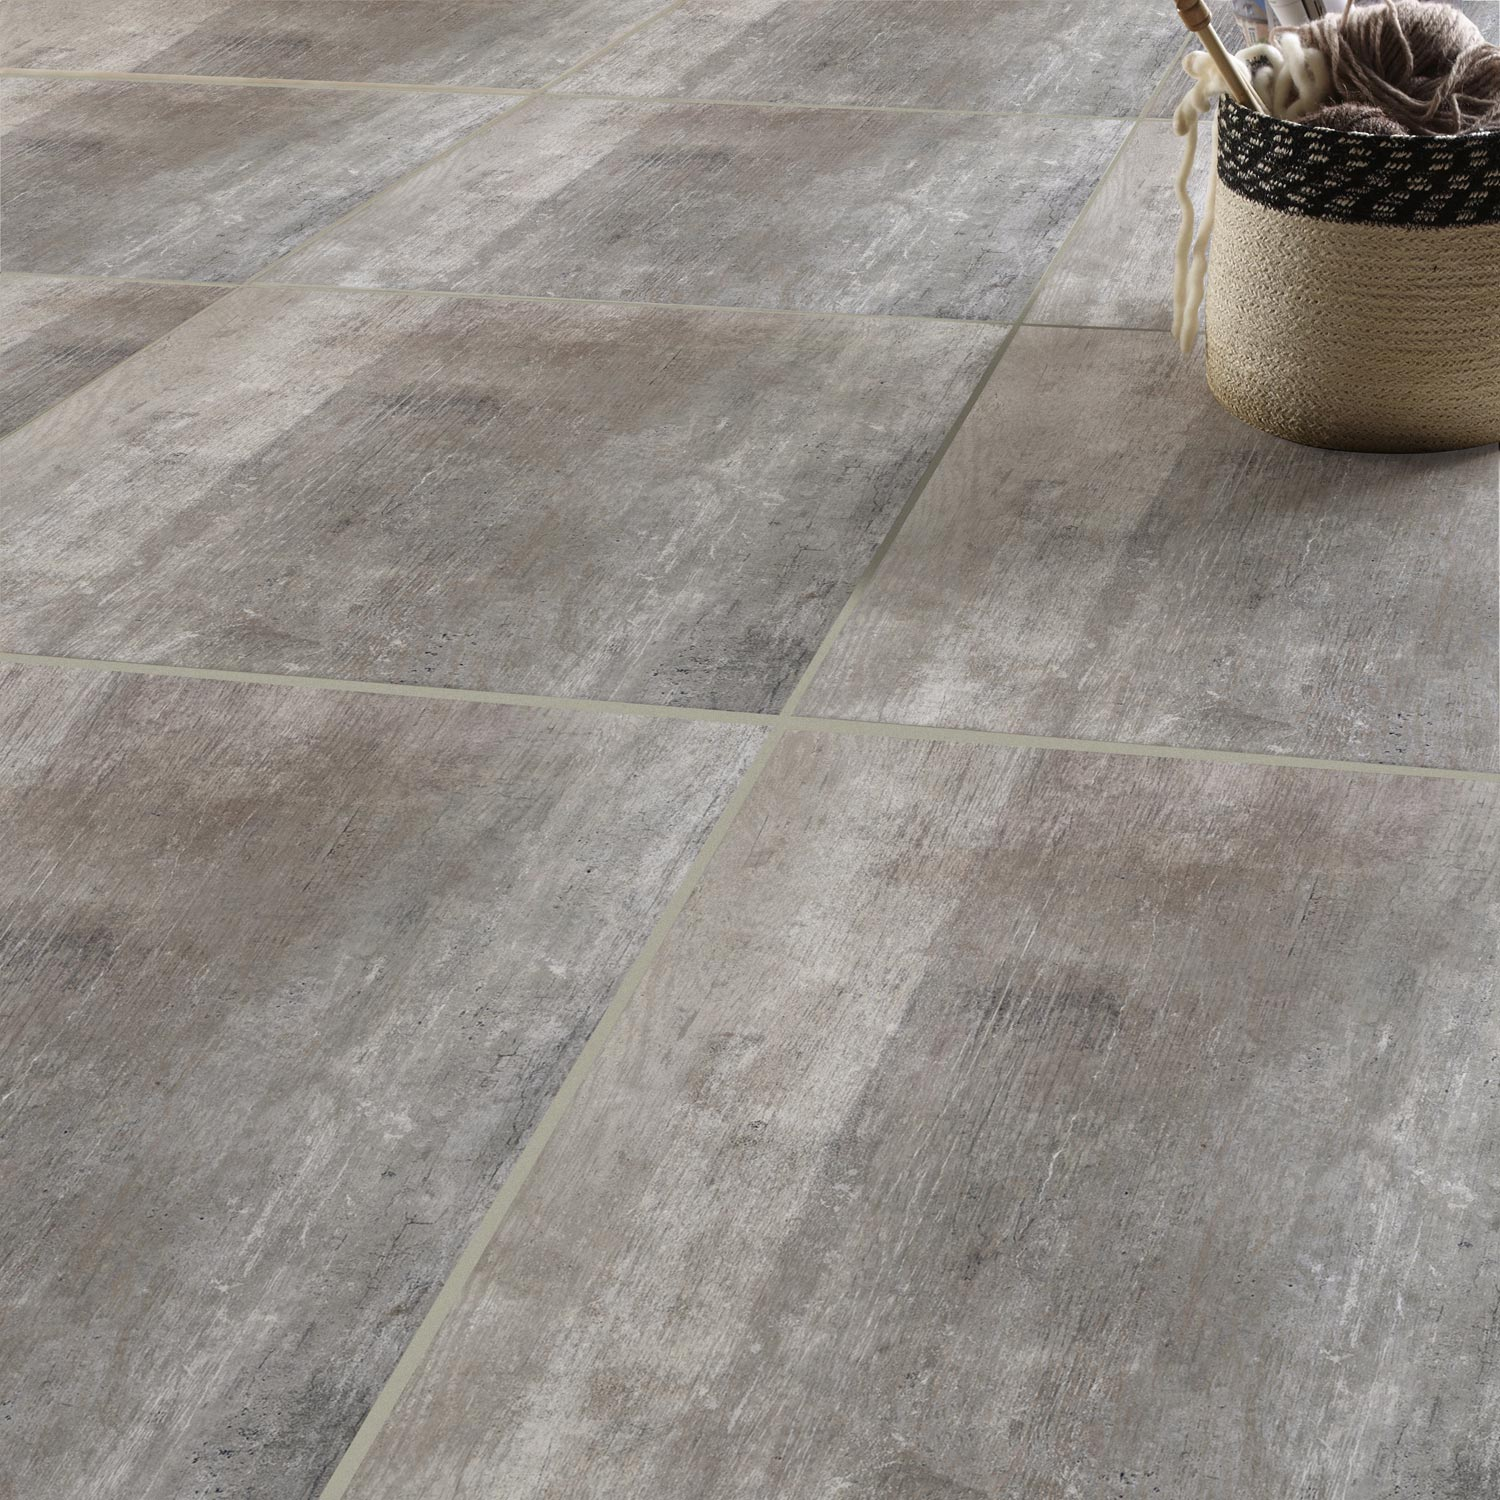 Carrelage gris 25x25 for Carrelage 25x25